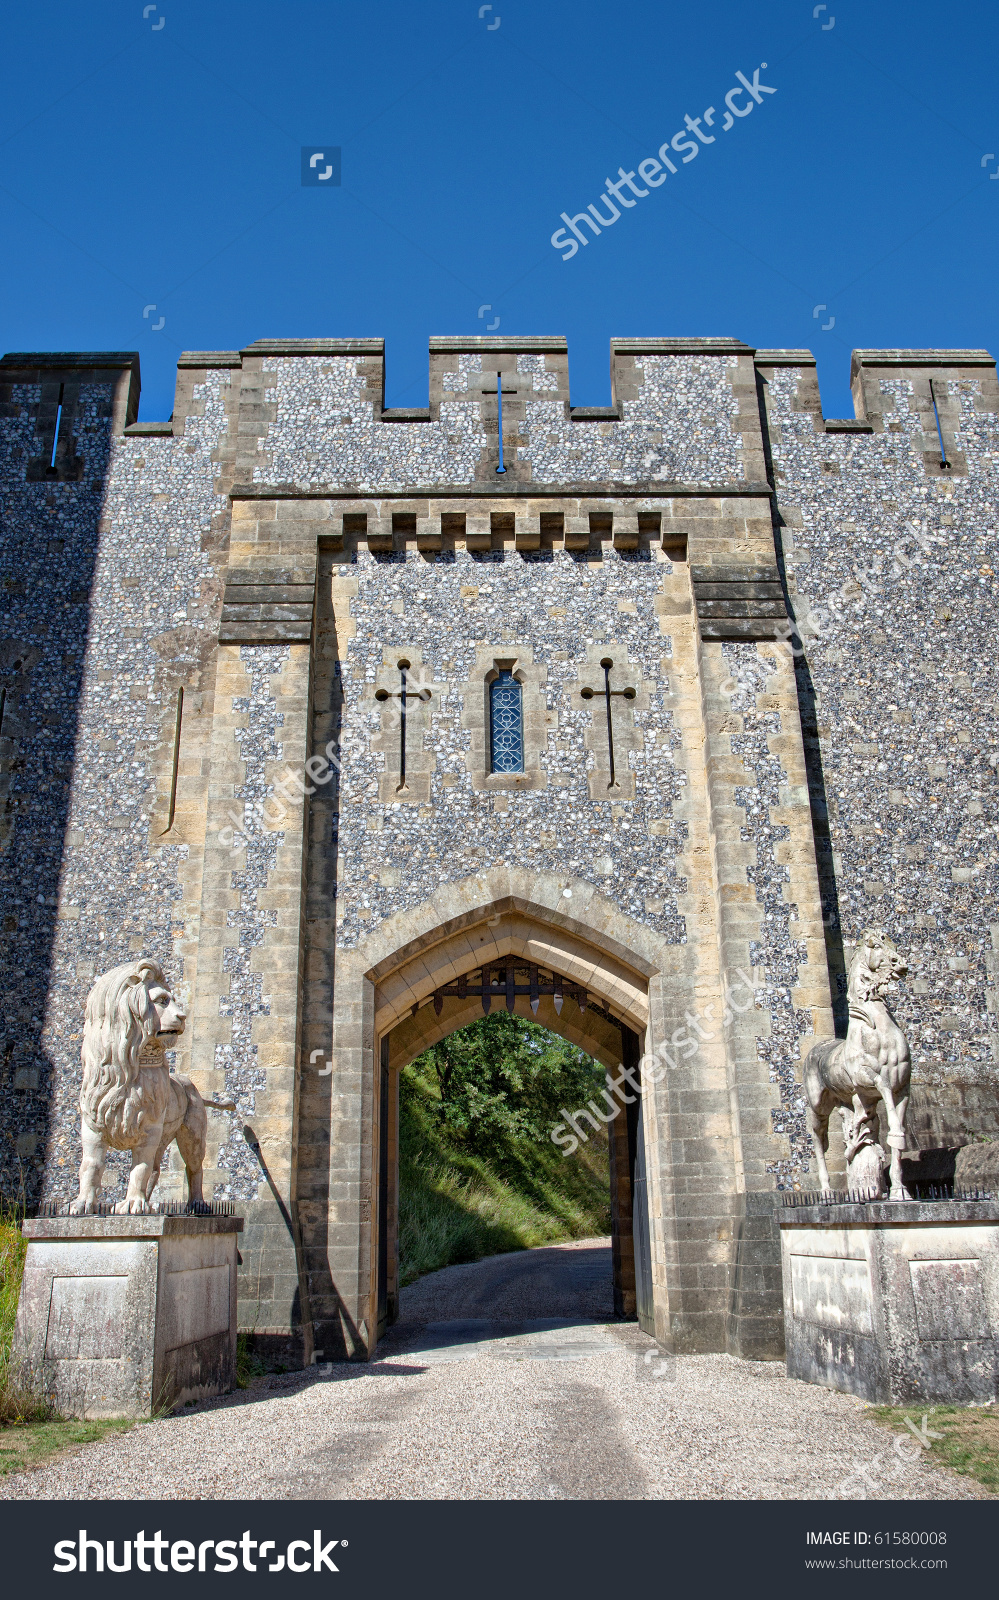 Entrance Gate Of Arundel Castle, England, Uk Stock Photo 61580008.